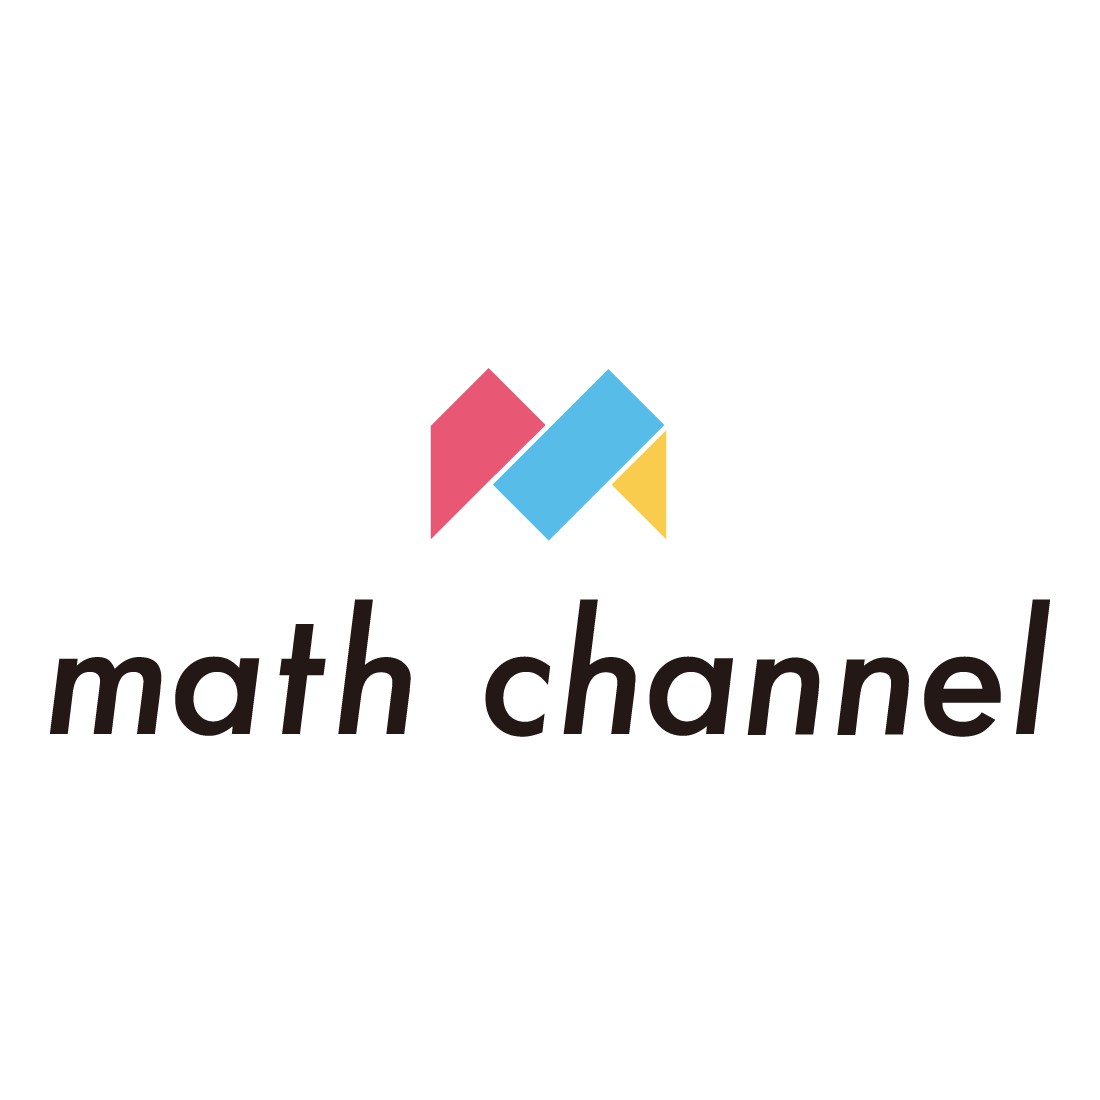 math channel スタッフ